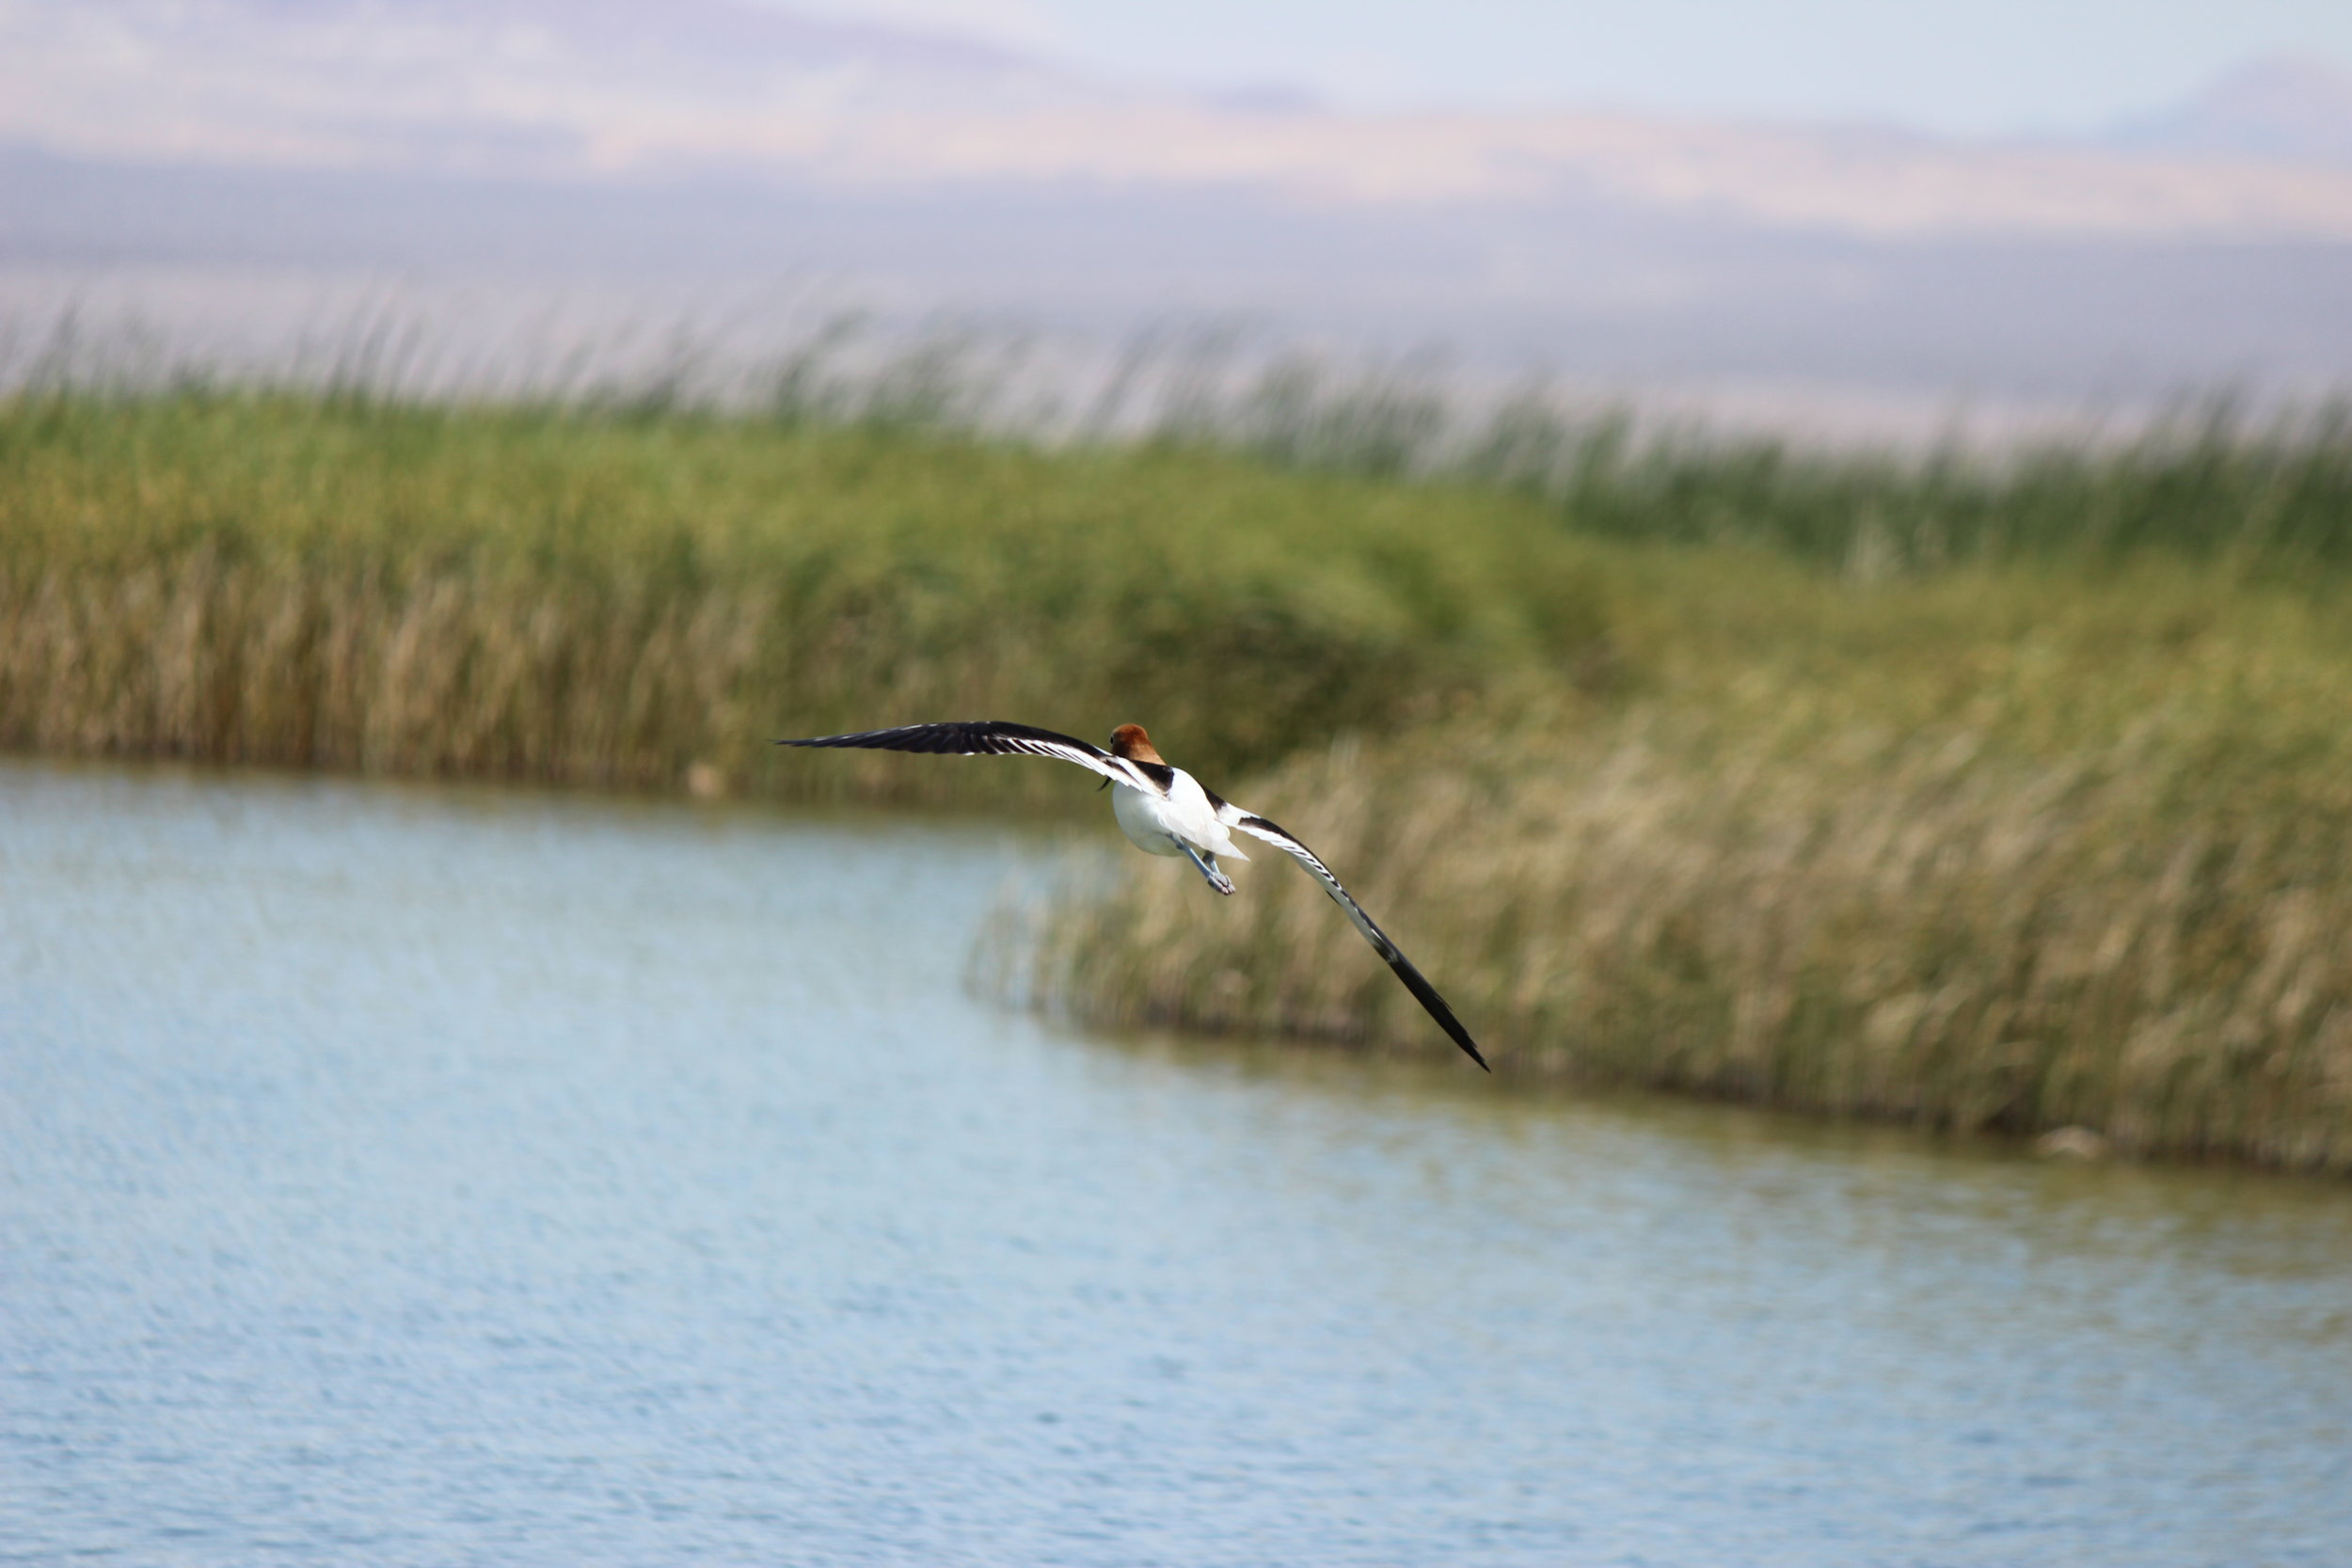 Harper Dry Lake Marsh  is a Watchable Wildlife Viewing area and an Area of Critical Environmental Concern (ACEC). It's also an important stopping place for thousands of migrating birds.